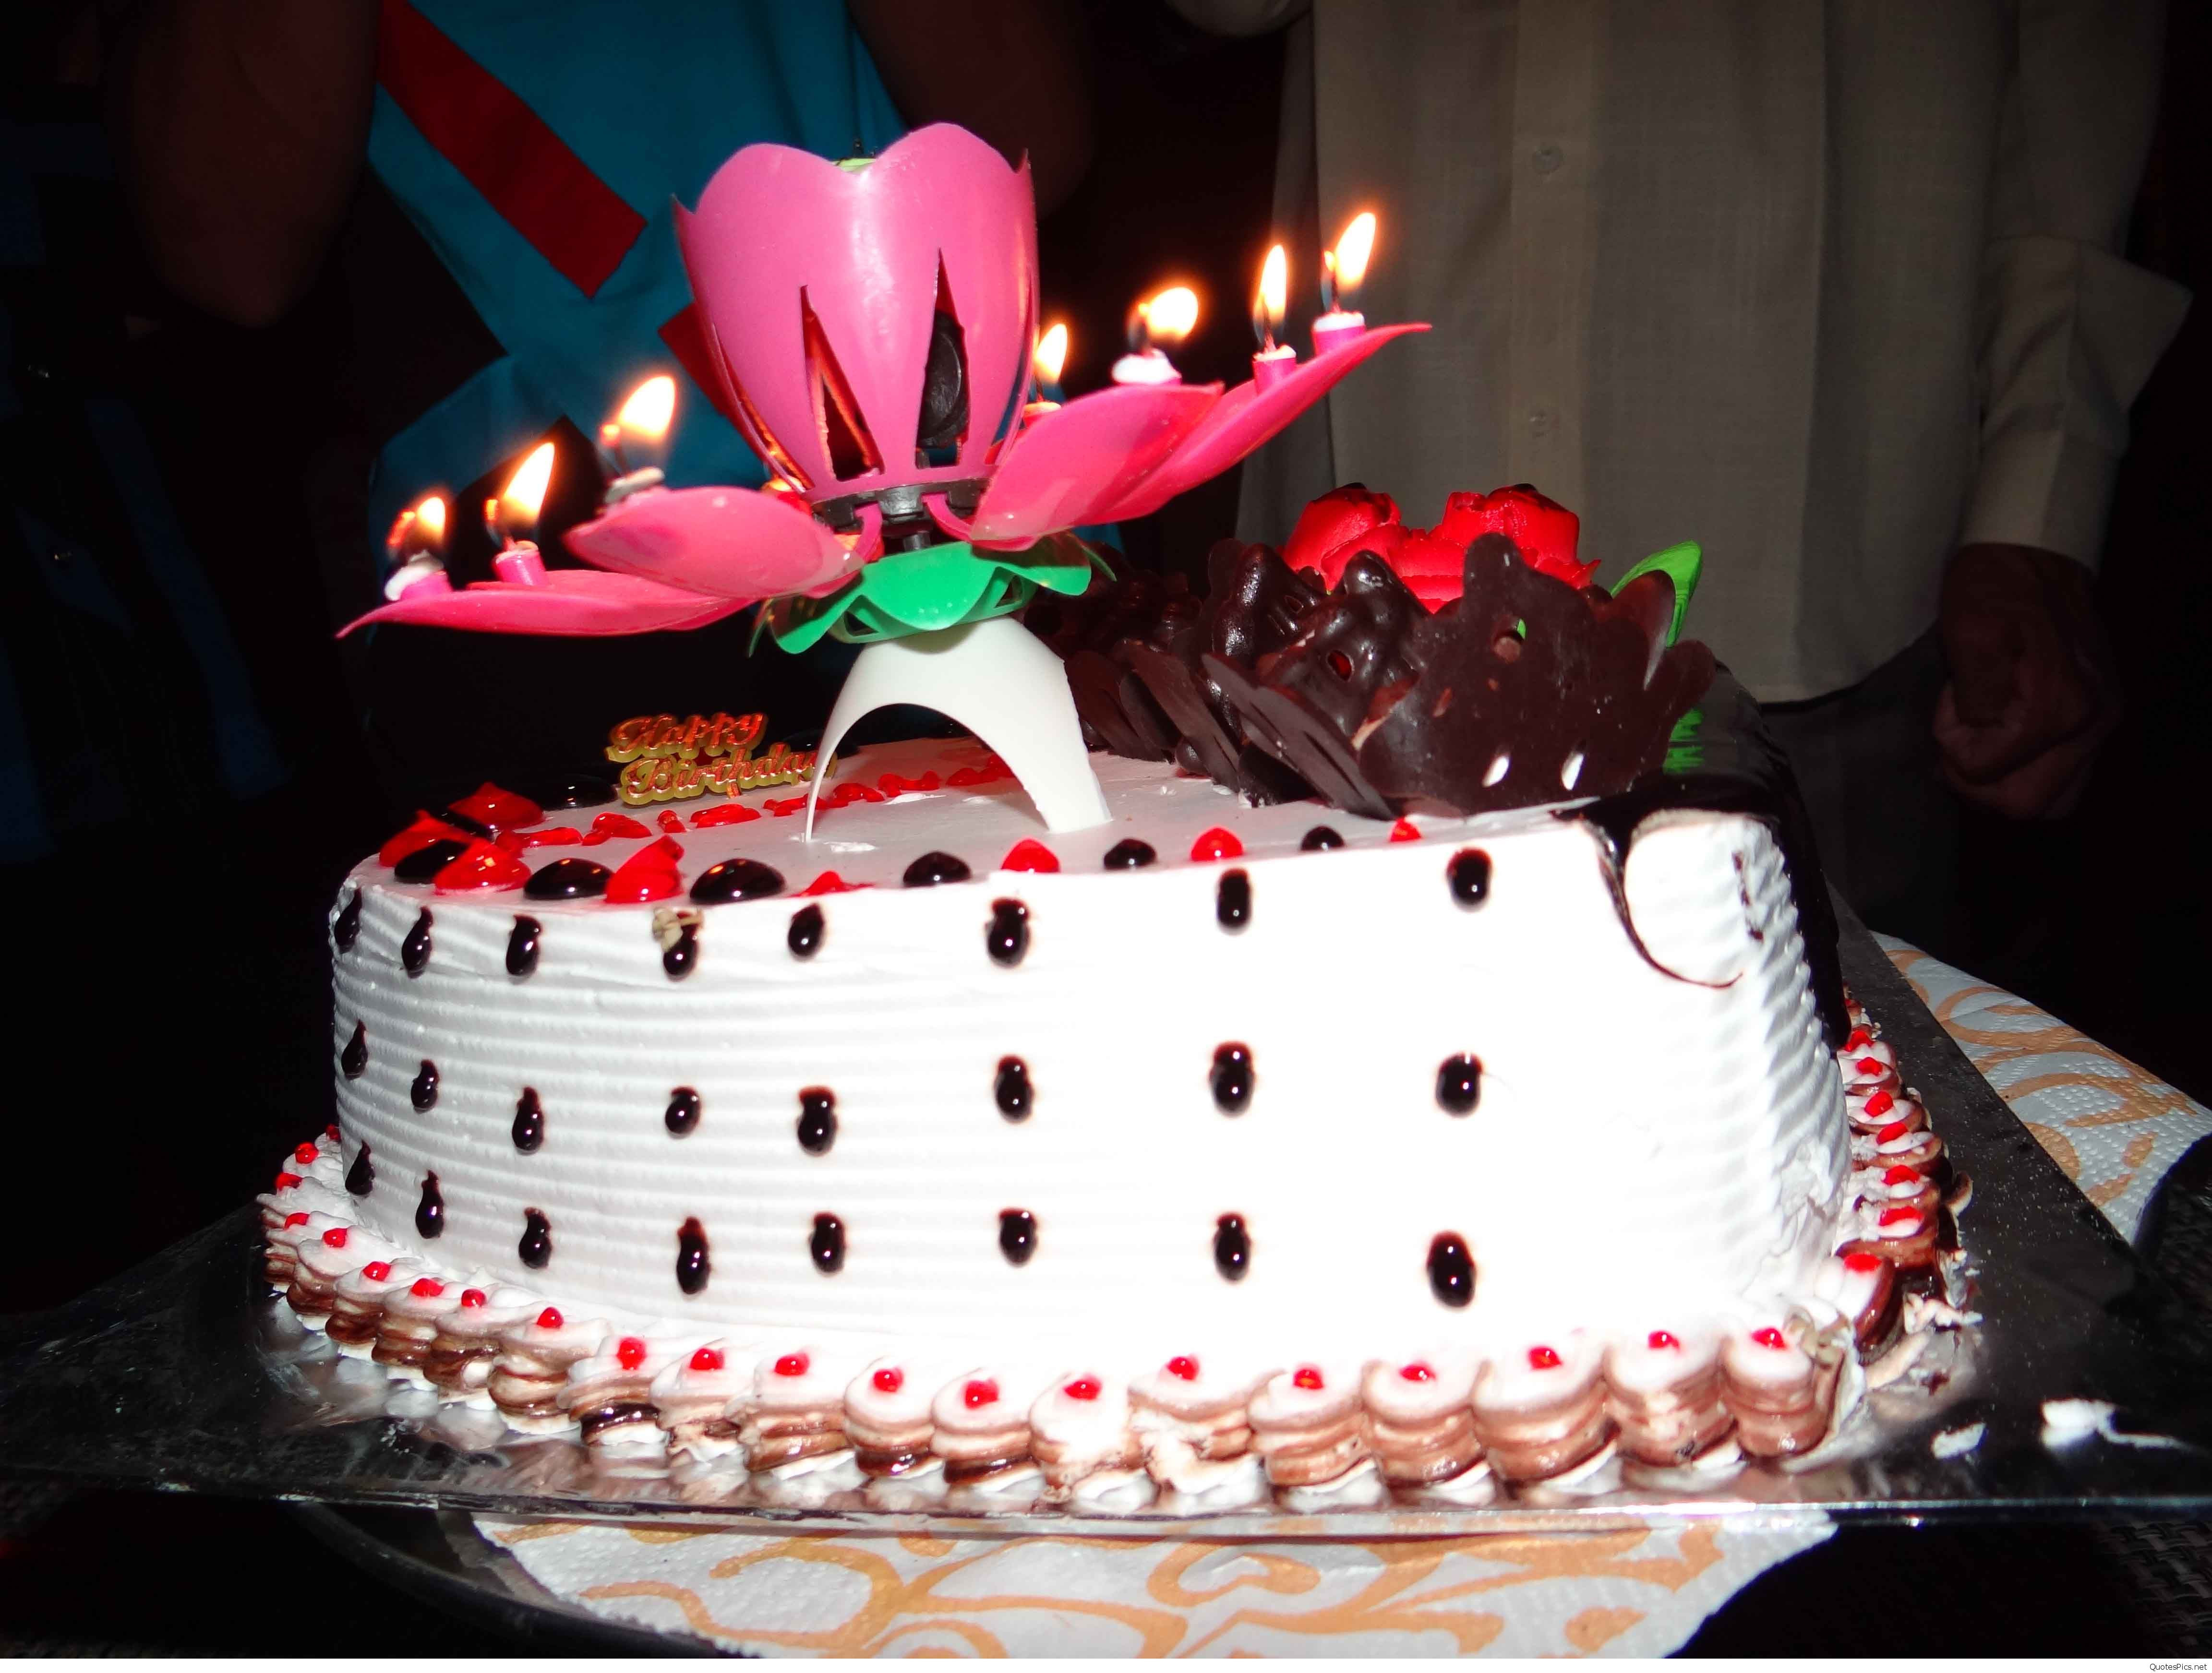 Best ideas about Birthday Cake Wallpaper . Save or Pin Amazing Happy Birthday cake wallpapers hd Now.